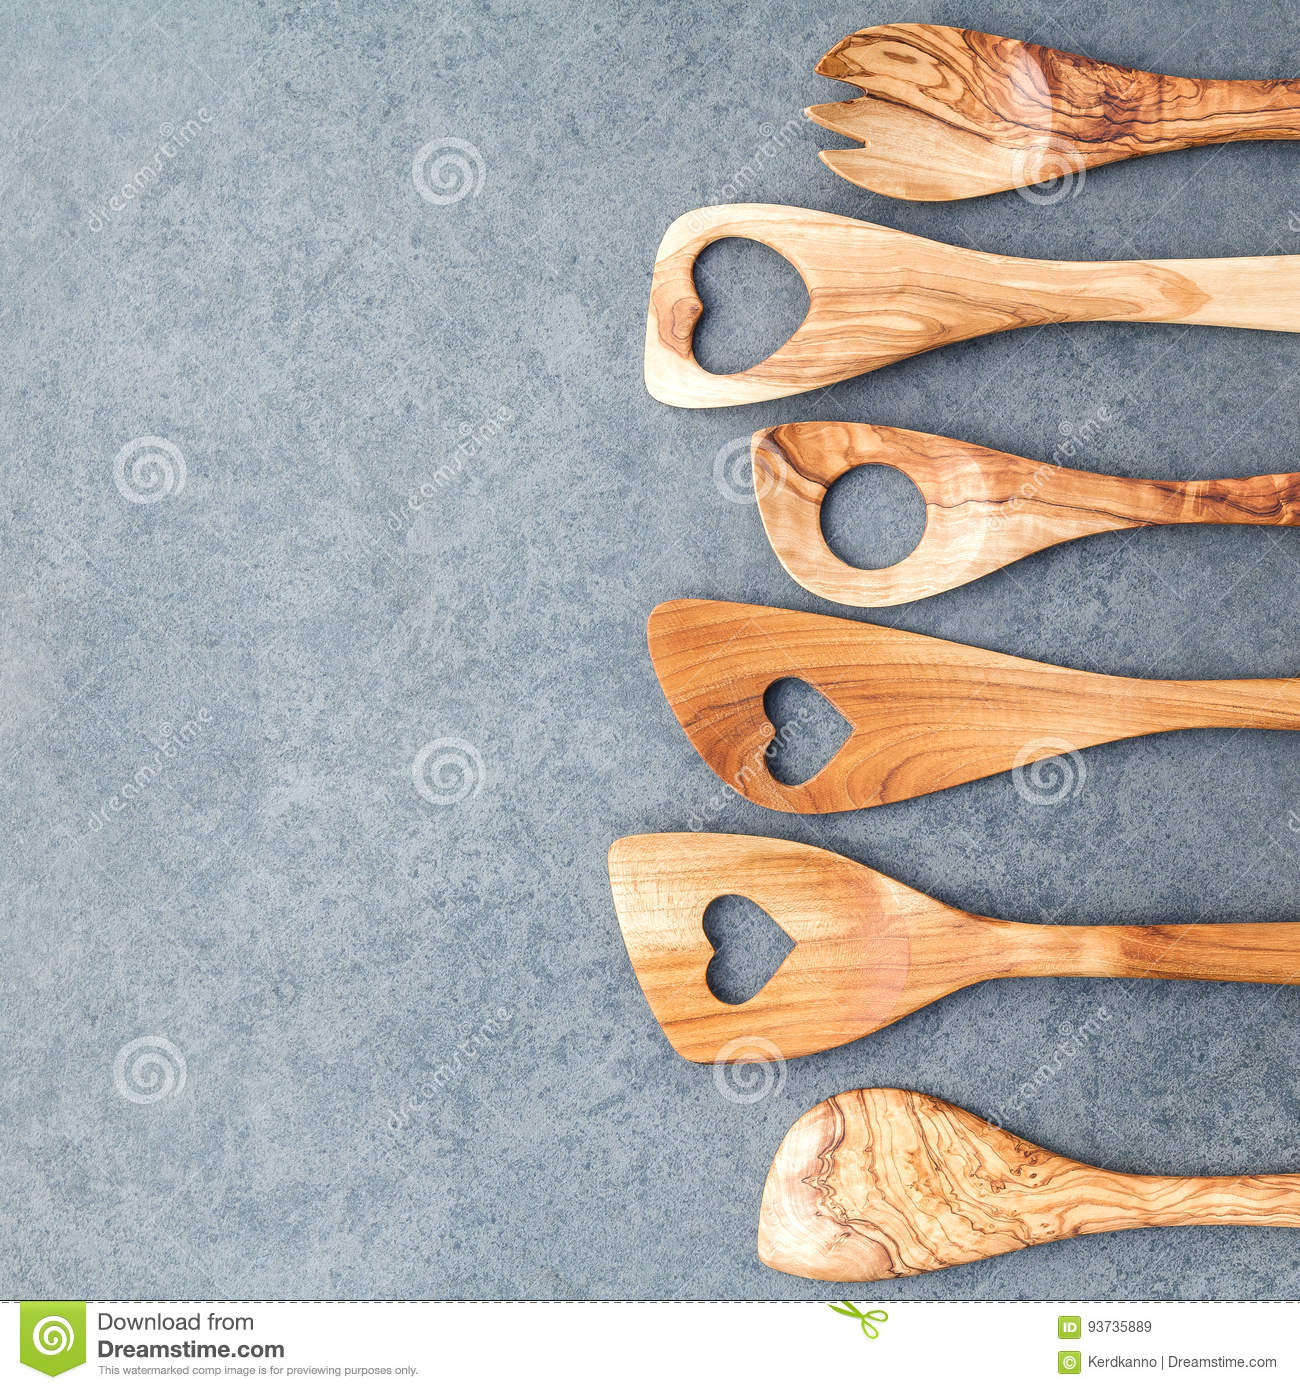 Various Wooden Cooking Utensils Border. Wooden Spoons And Wooden ...